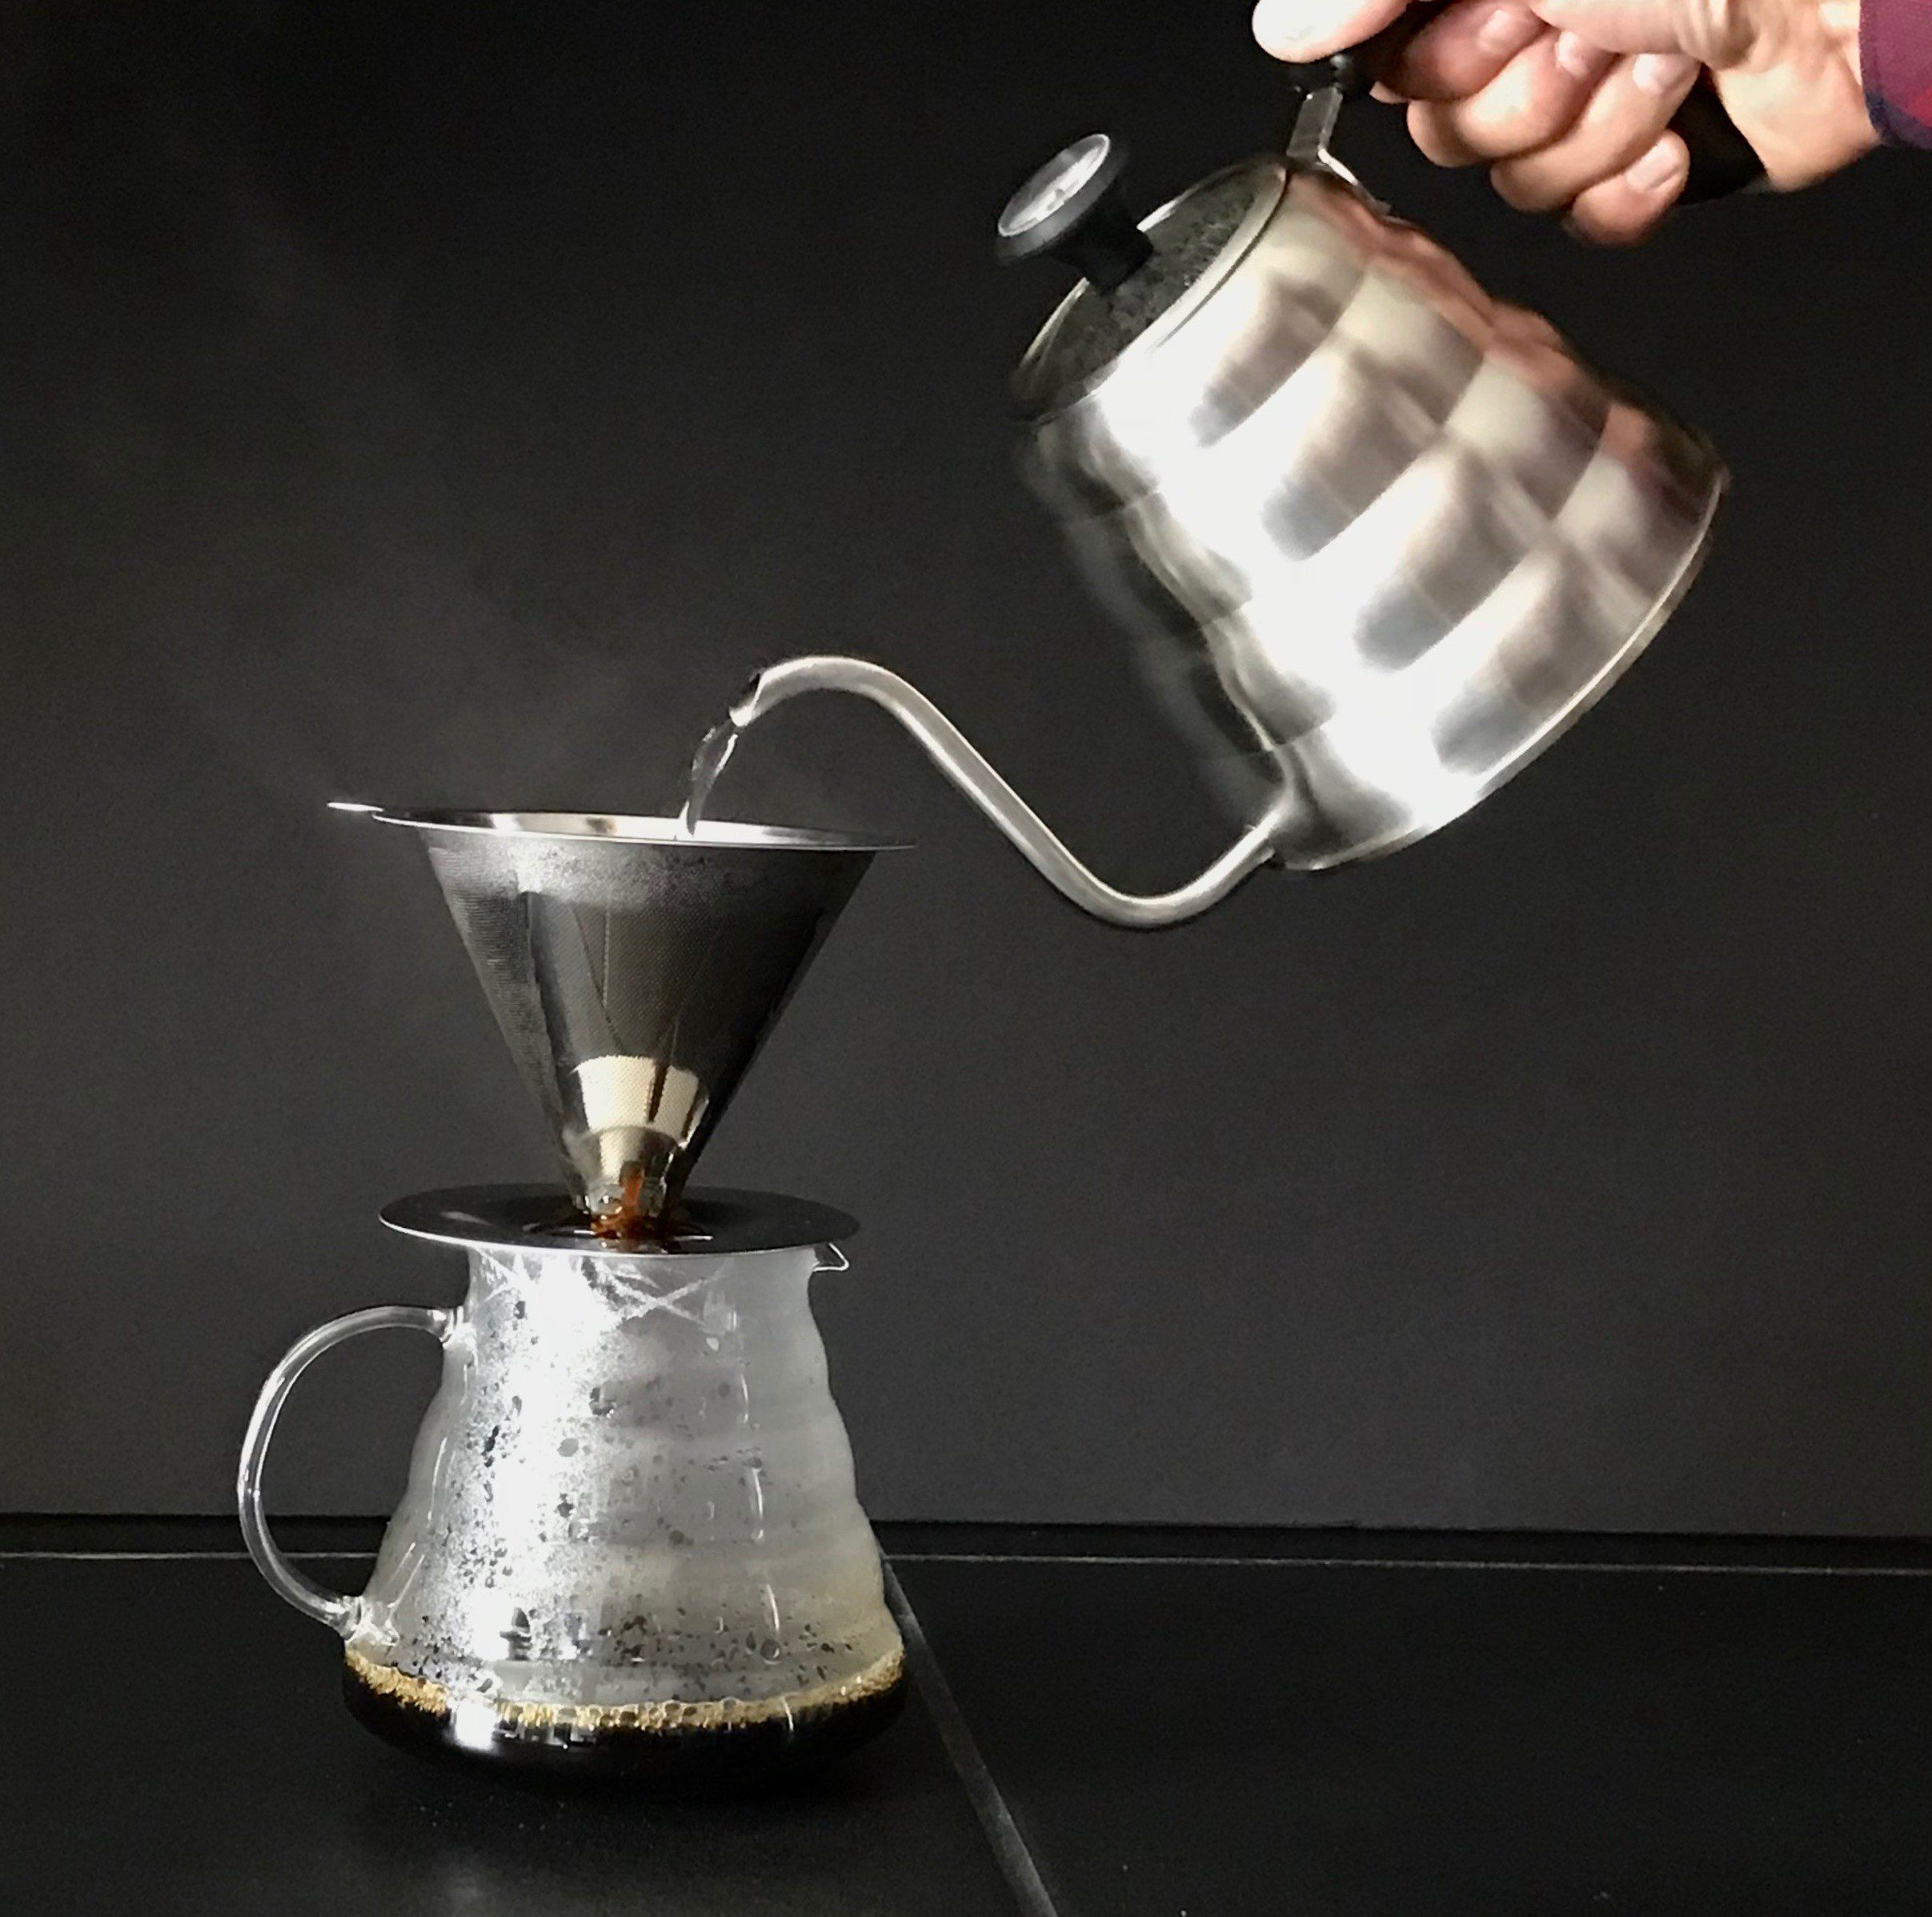 Stainless steel pour over coffee dripper by olâuac blue slow drip